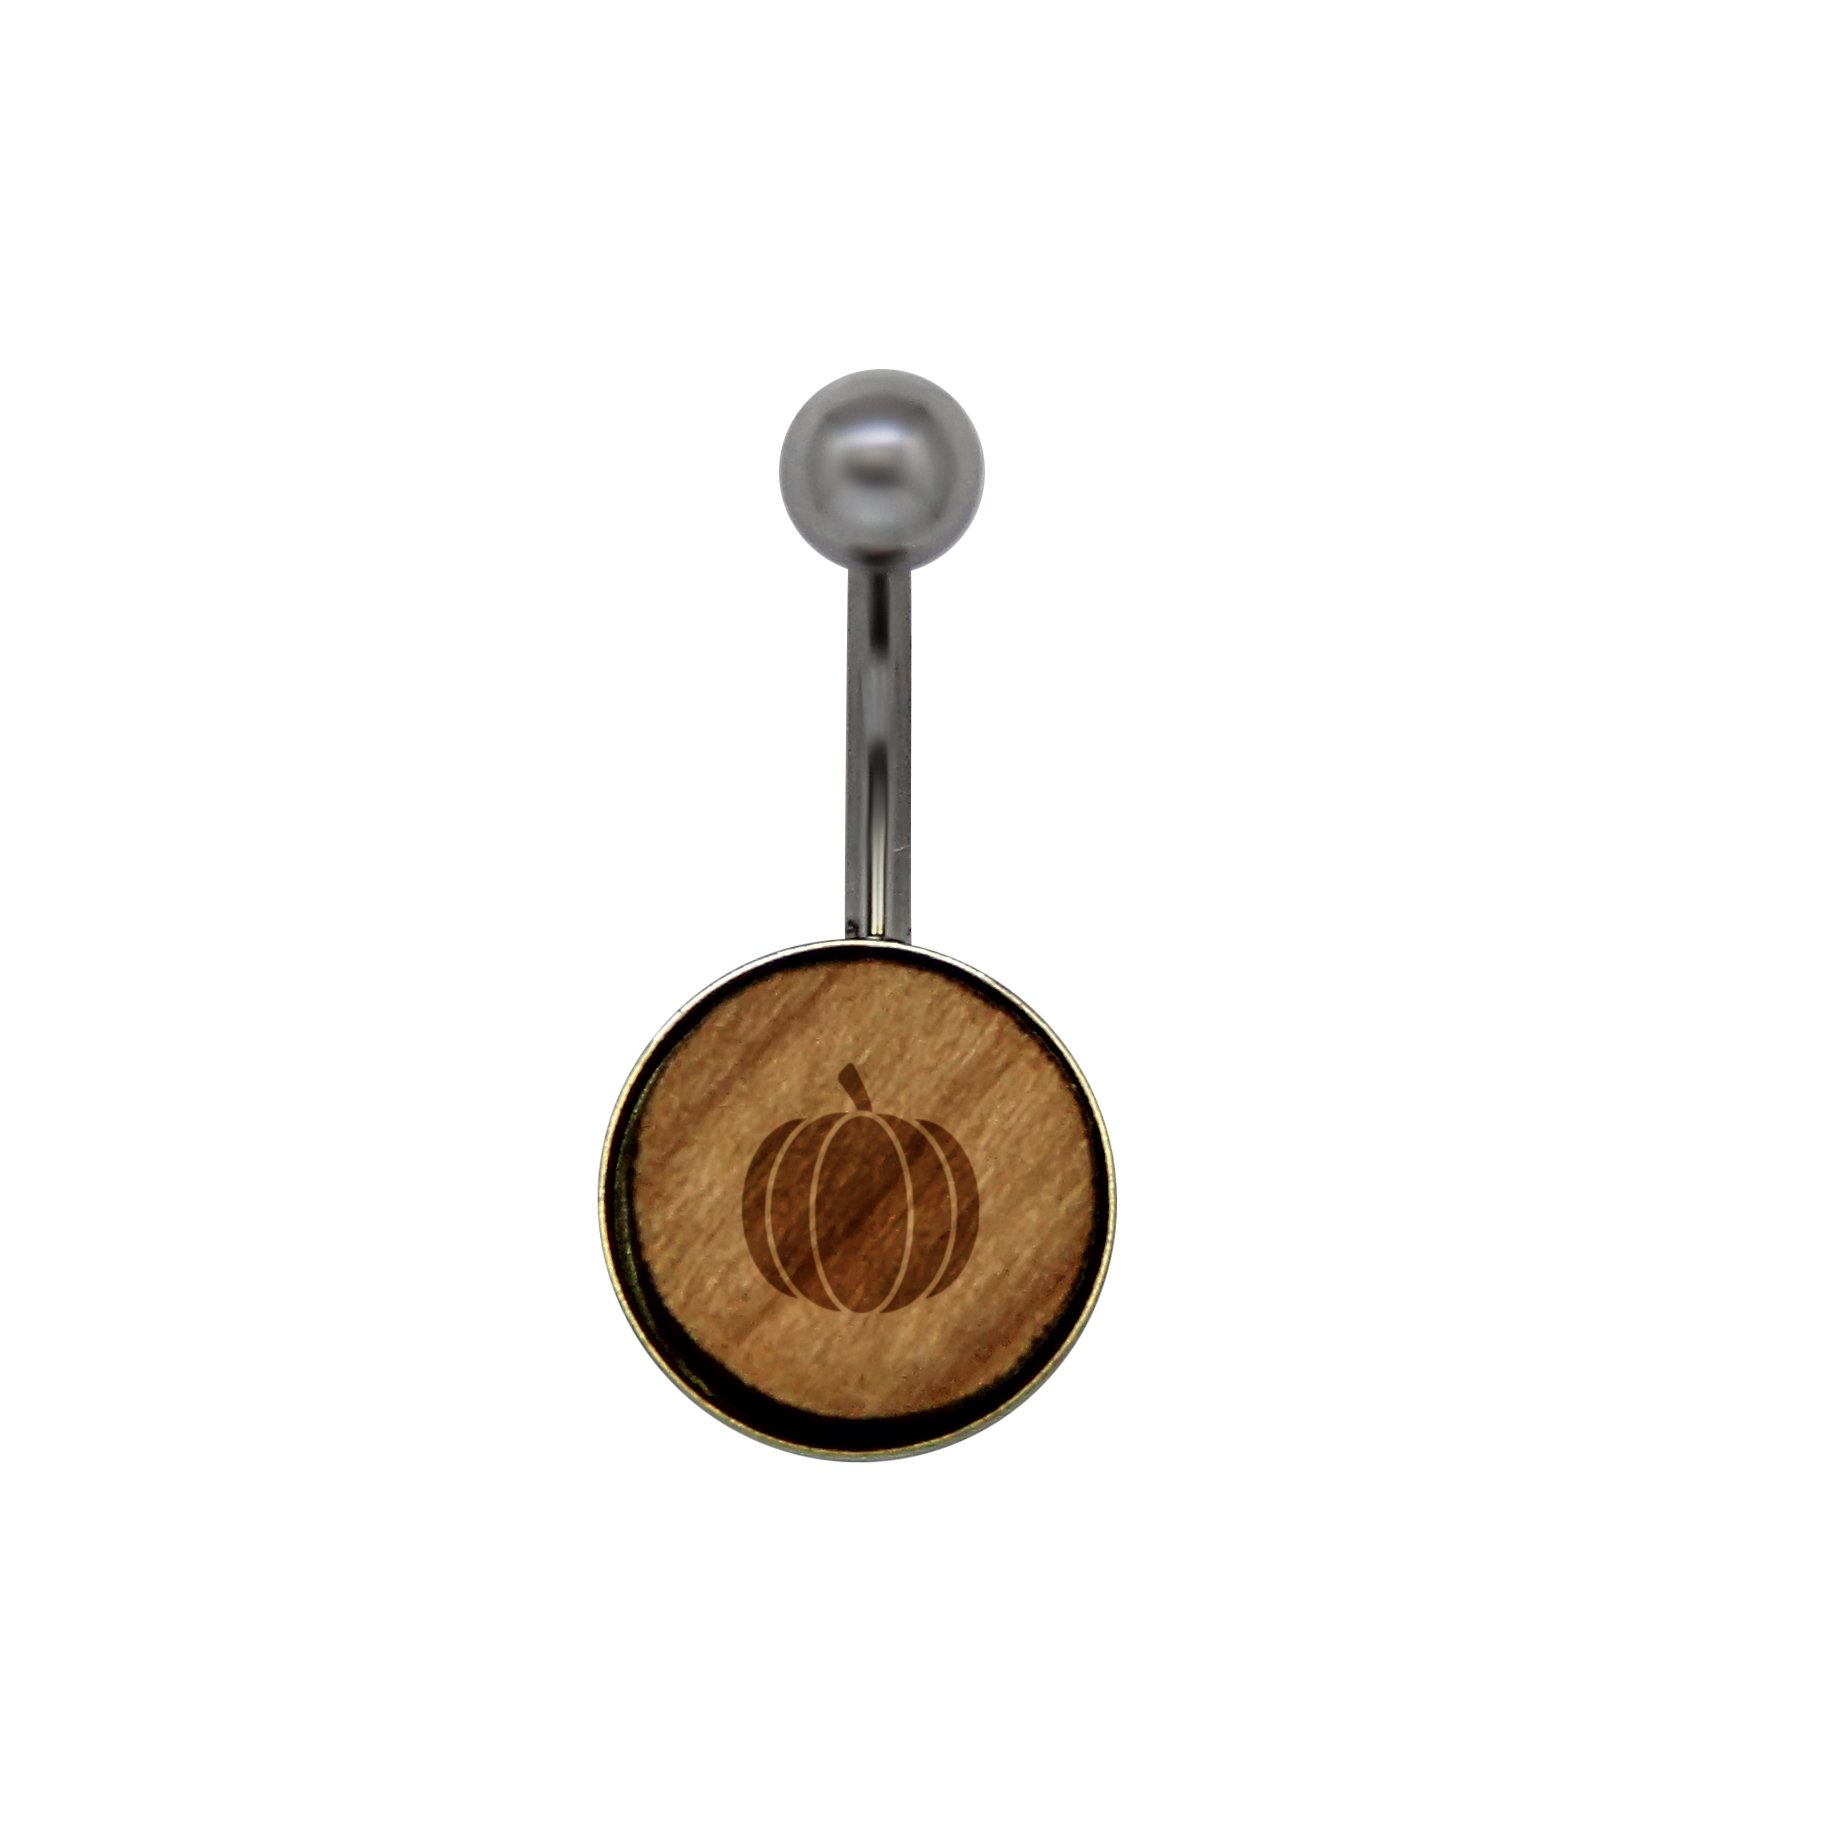 Pumpkin Surgical Stainless Steel Belly Button Rings - Size 14 Gauge Wooden Navel Ring - Rustic Wood Navel Ring With Laser Engraved Design